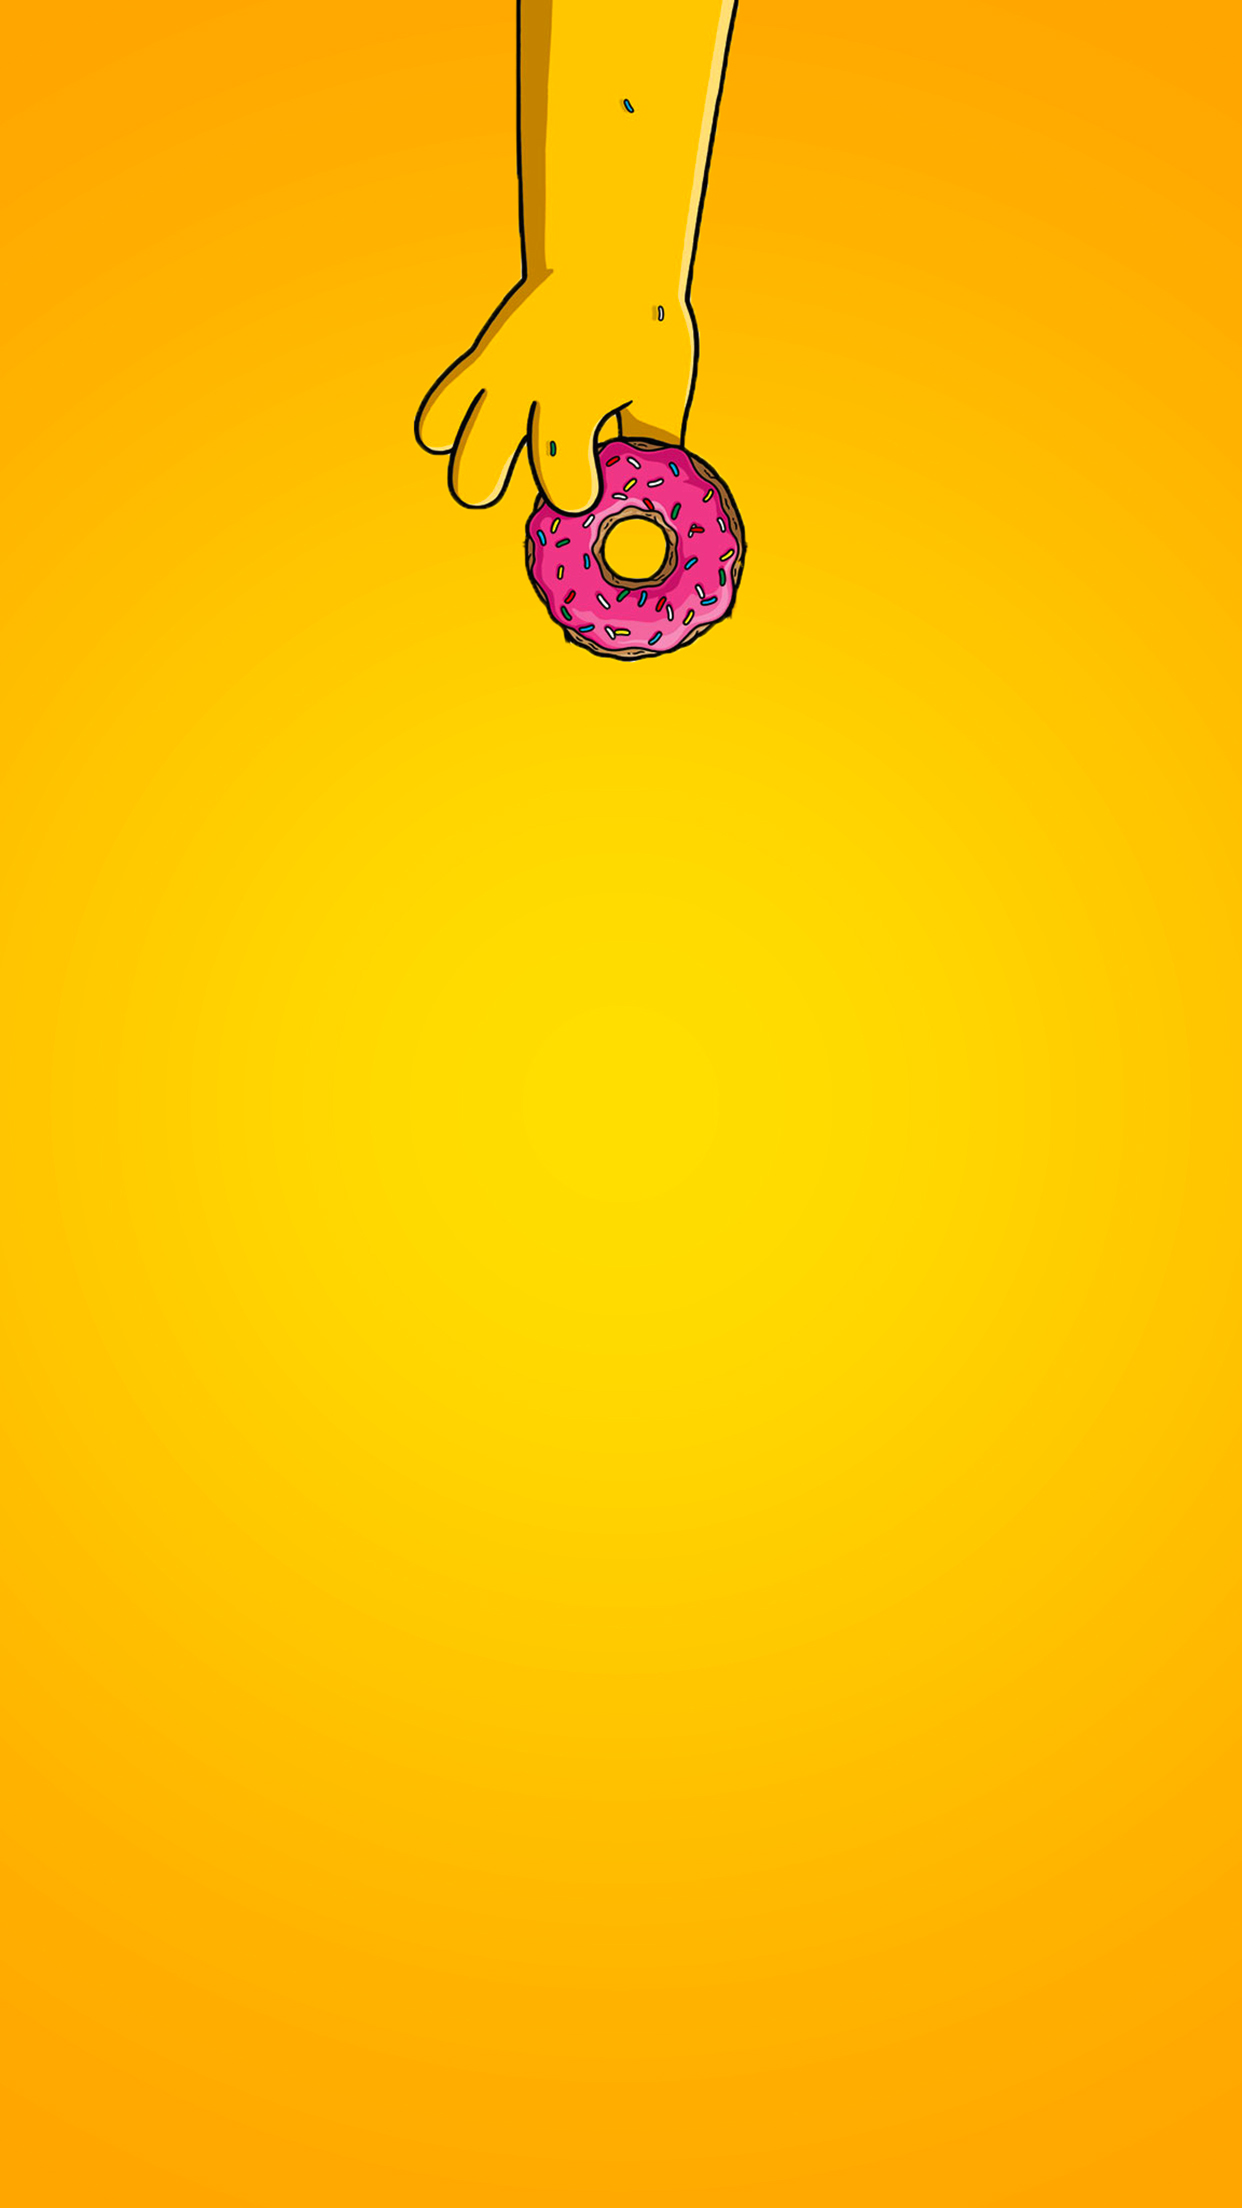 Wallpaper iphone simpsons - Simpsons Yellow Woohoo Donut 3wallpapers Iphone Parallax